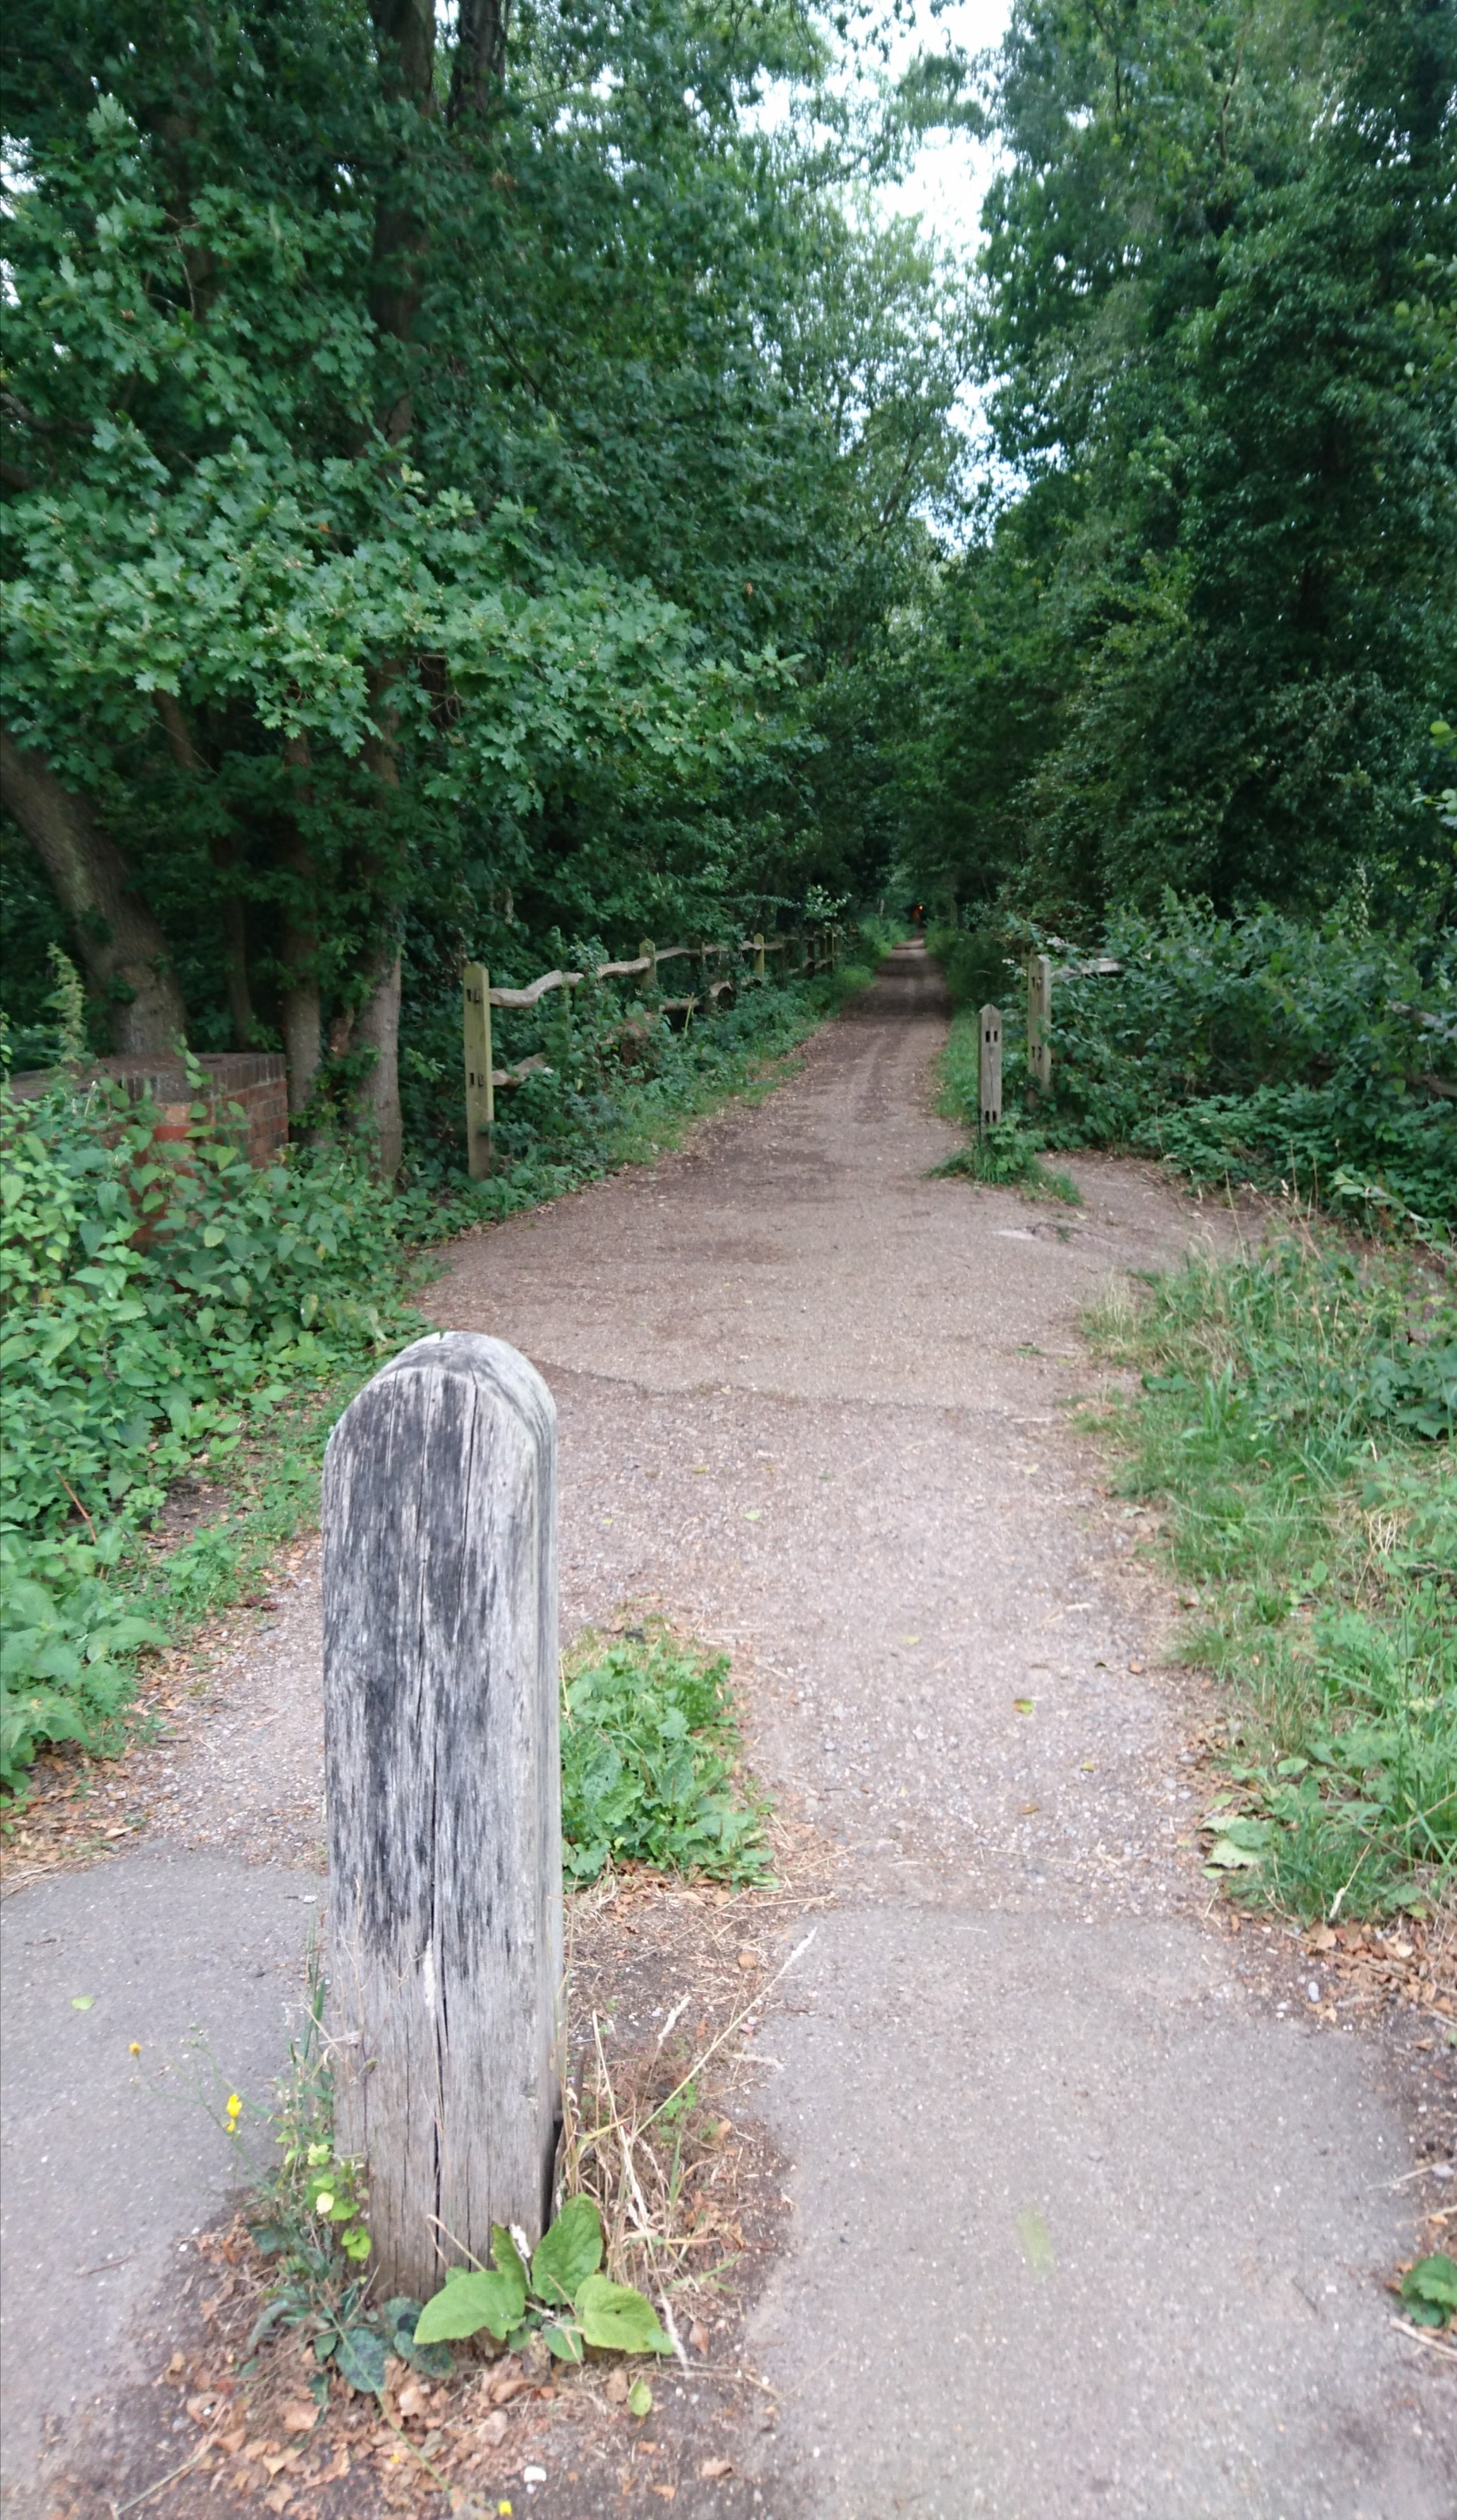 The Path Follows The Course Of Two Dismantled Railways, Both Of Which  Closed In The 1960's As A Result Of The Beeching Axe As The Canals  Capitulated To The